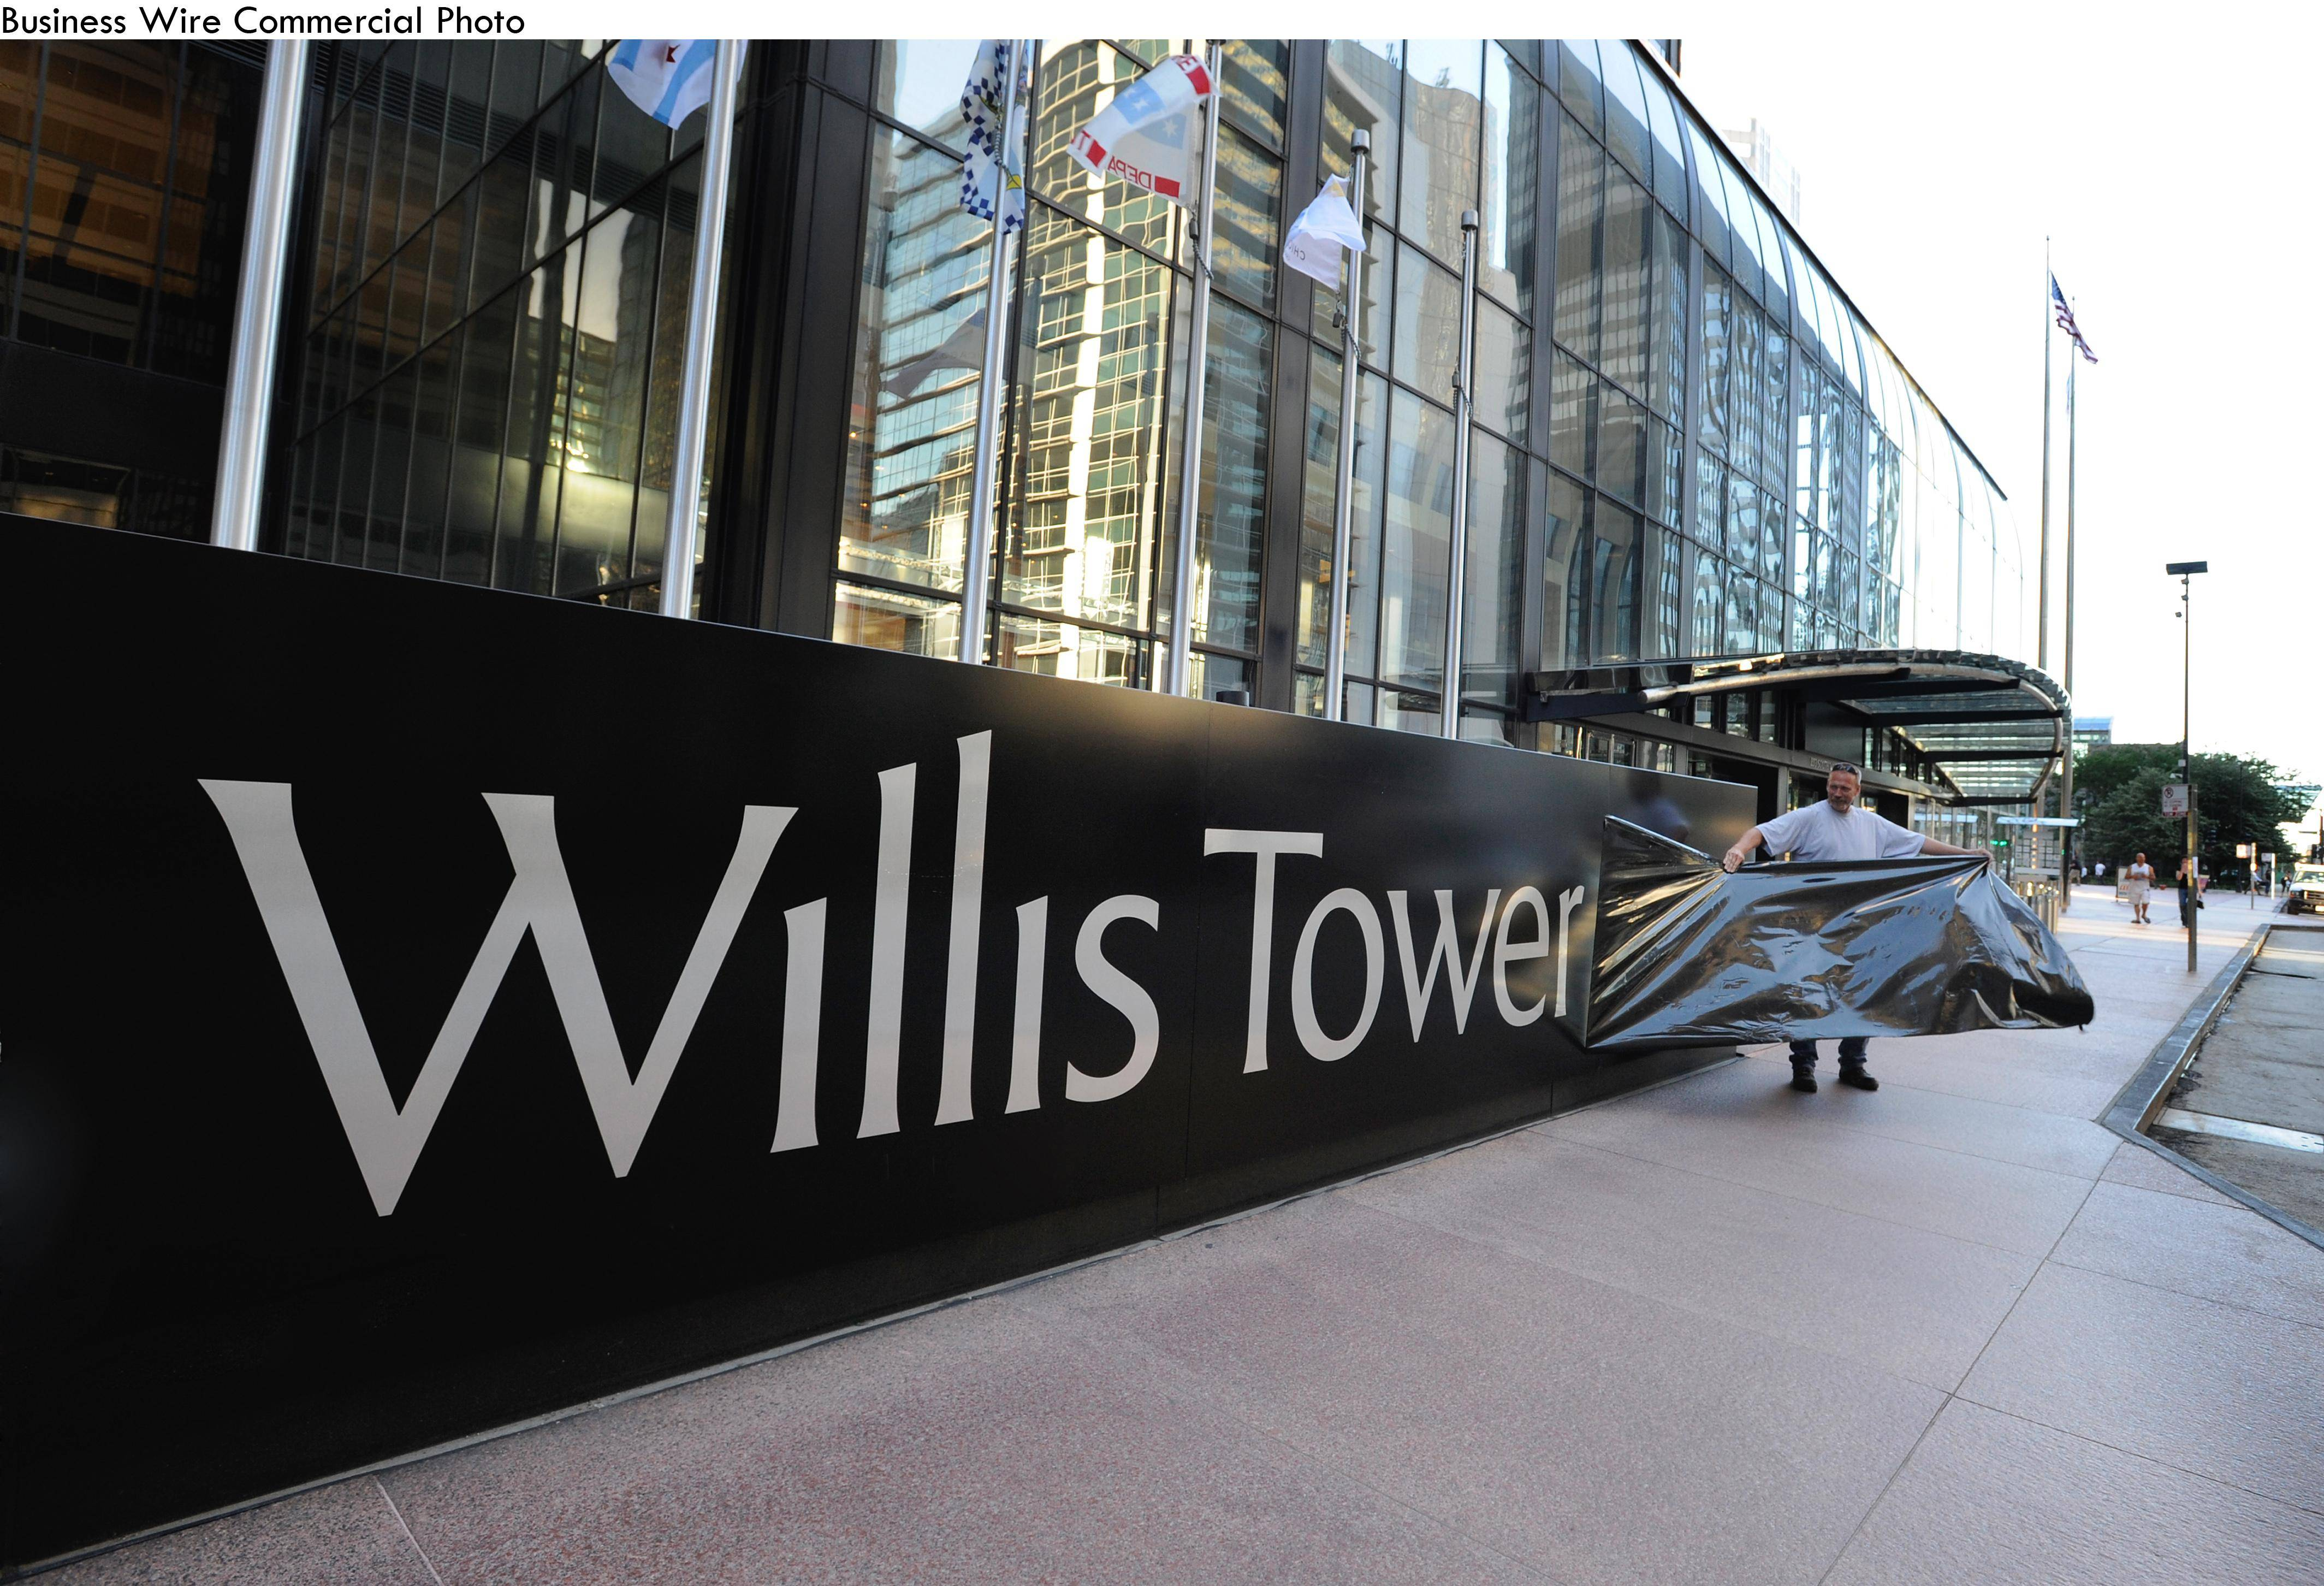 The former Sears Tower, known now as the Willis Tower, has been sold again.